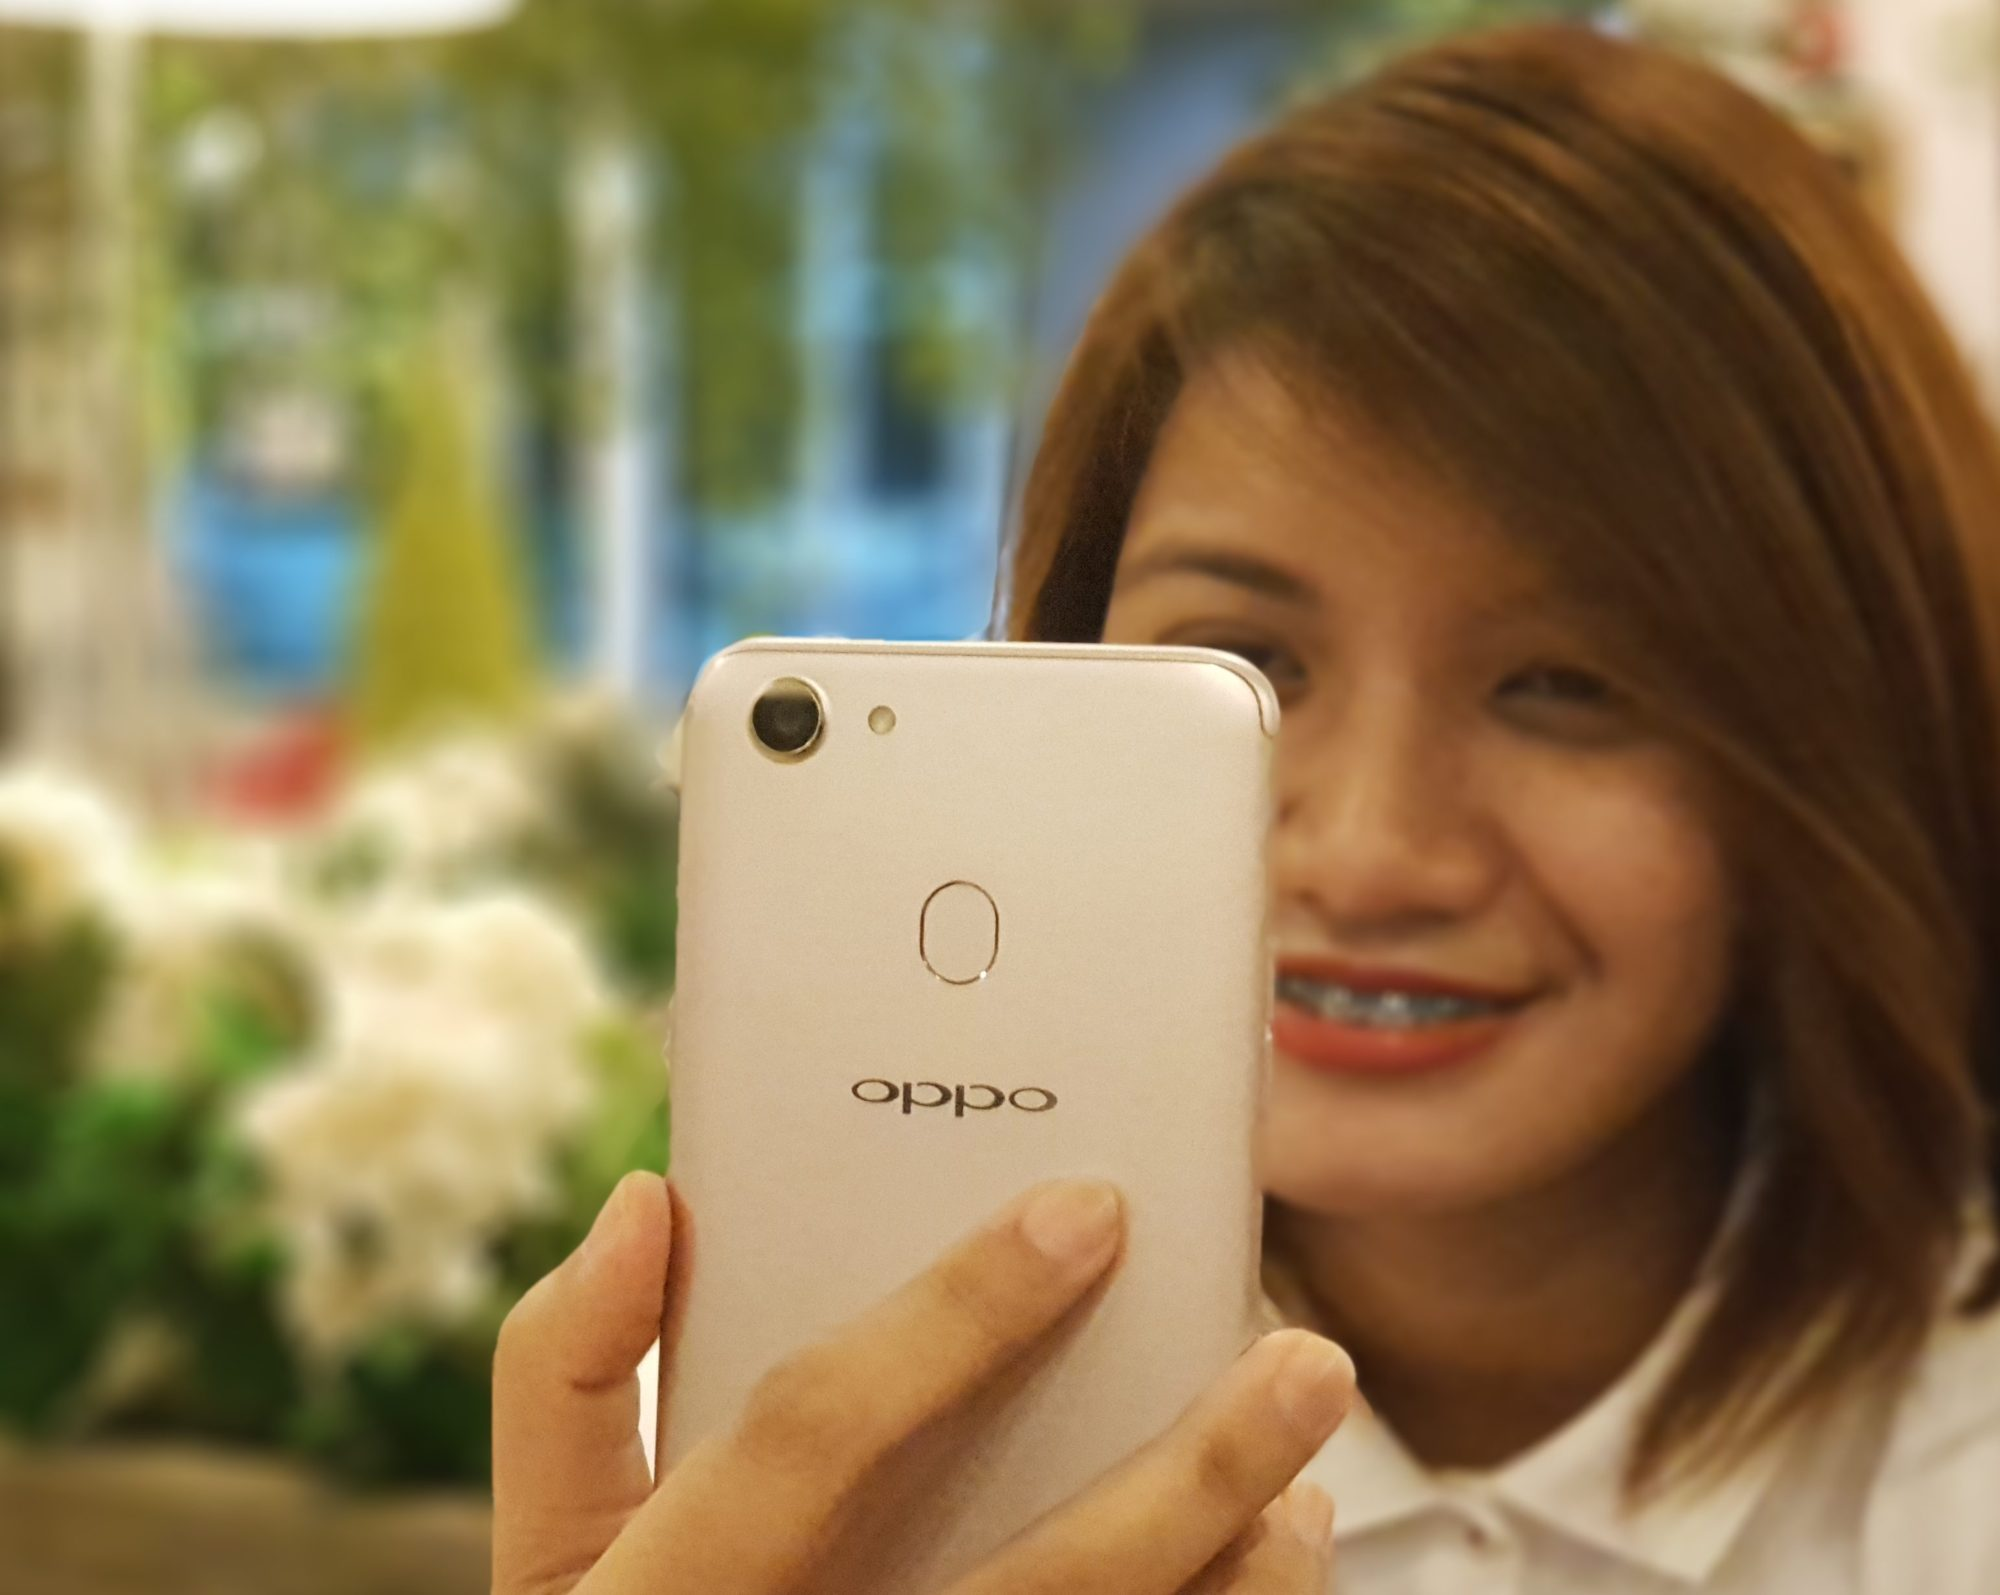 oppo-philippines-introduces-the-new-oppo-f5-with-ai-assisted-selfies-with-sample-photos